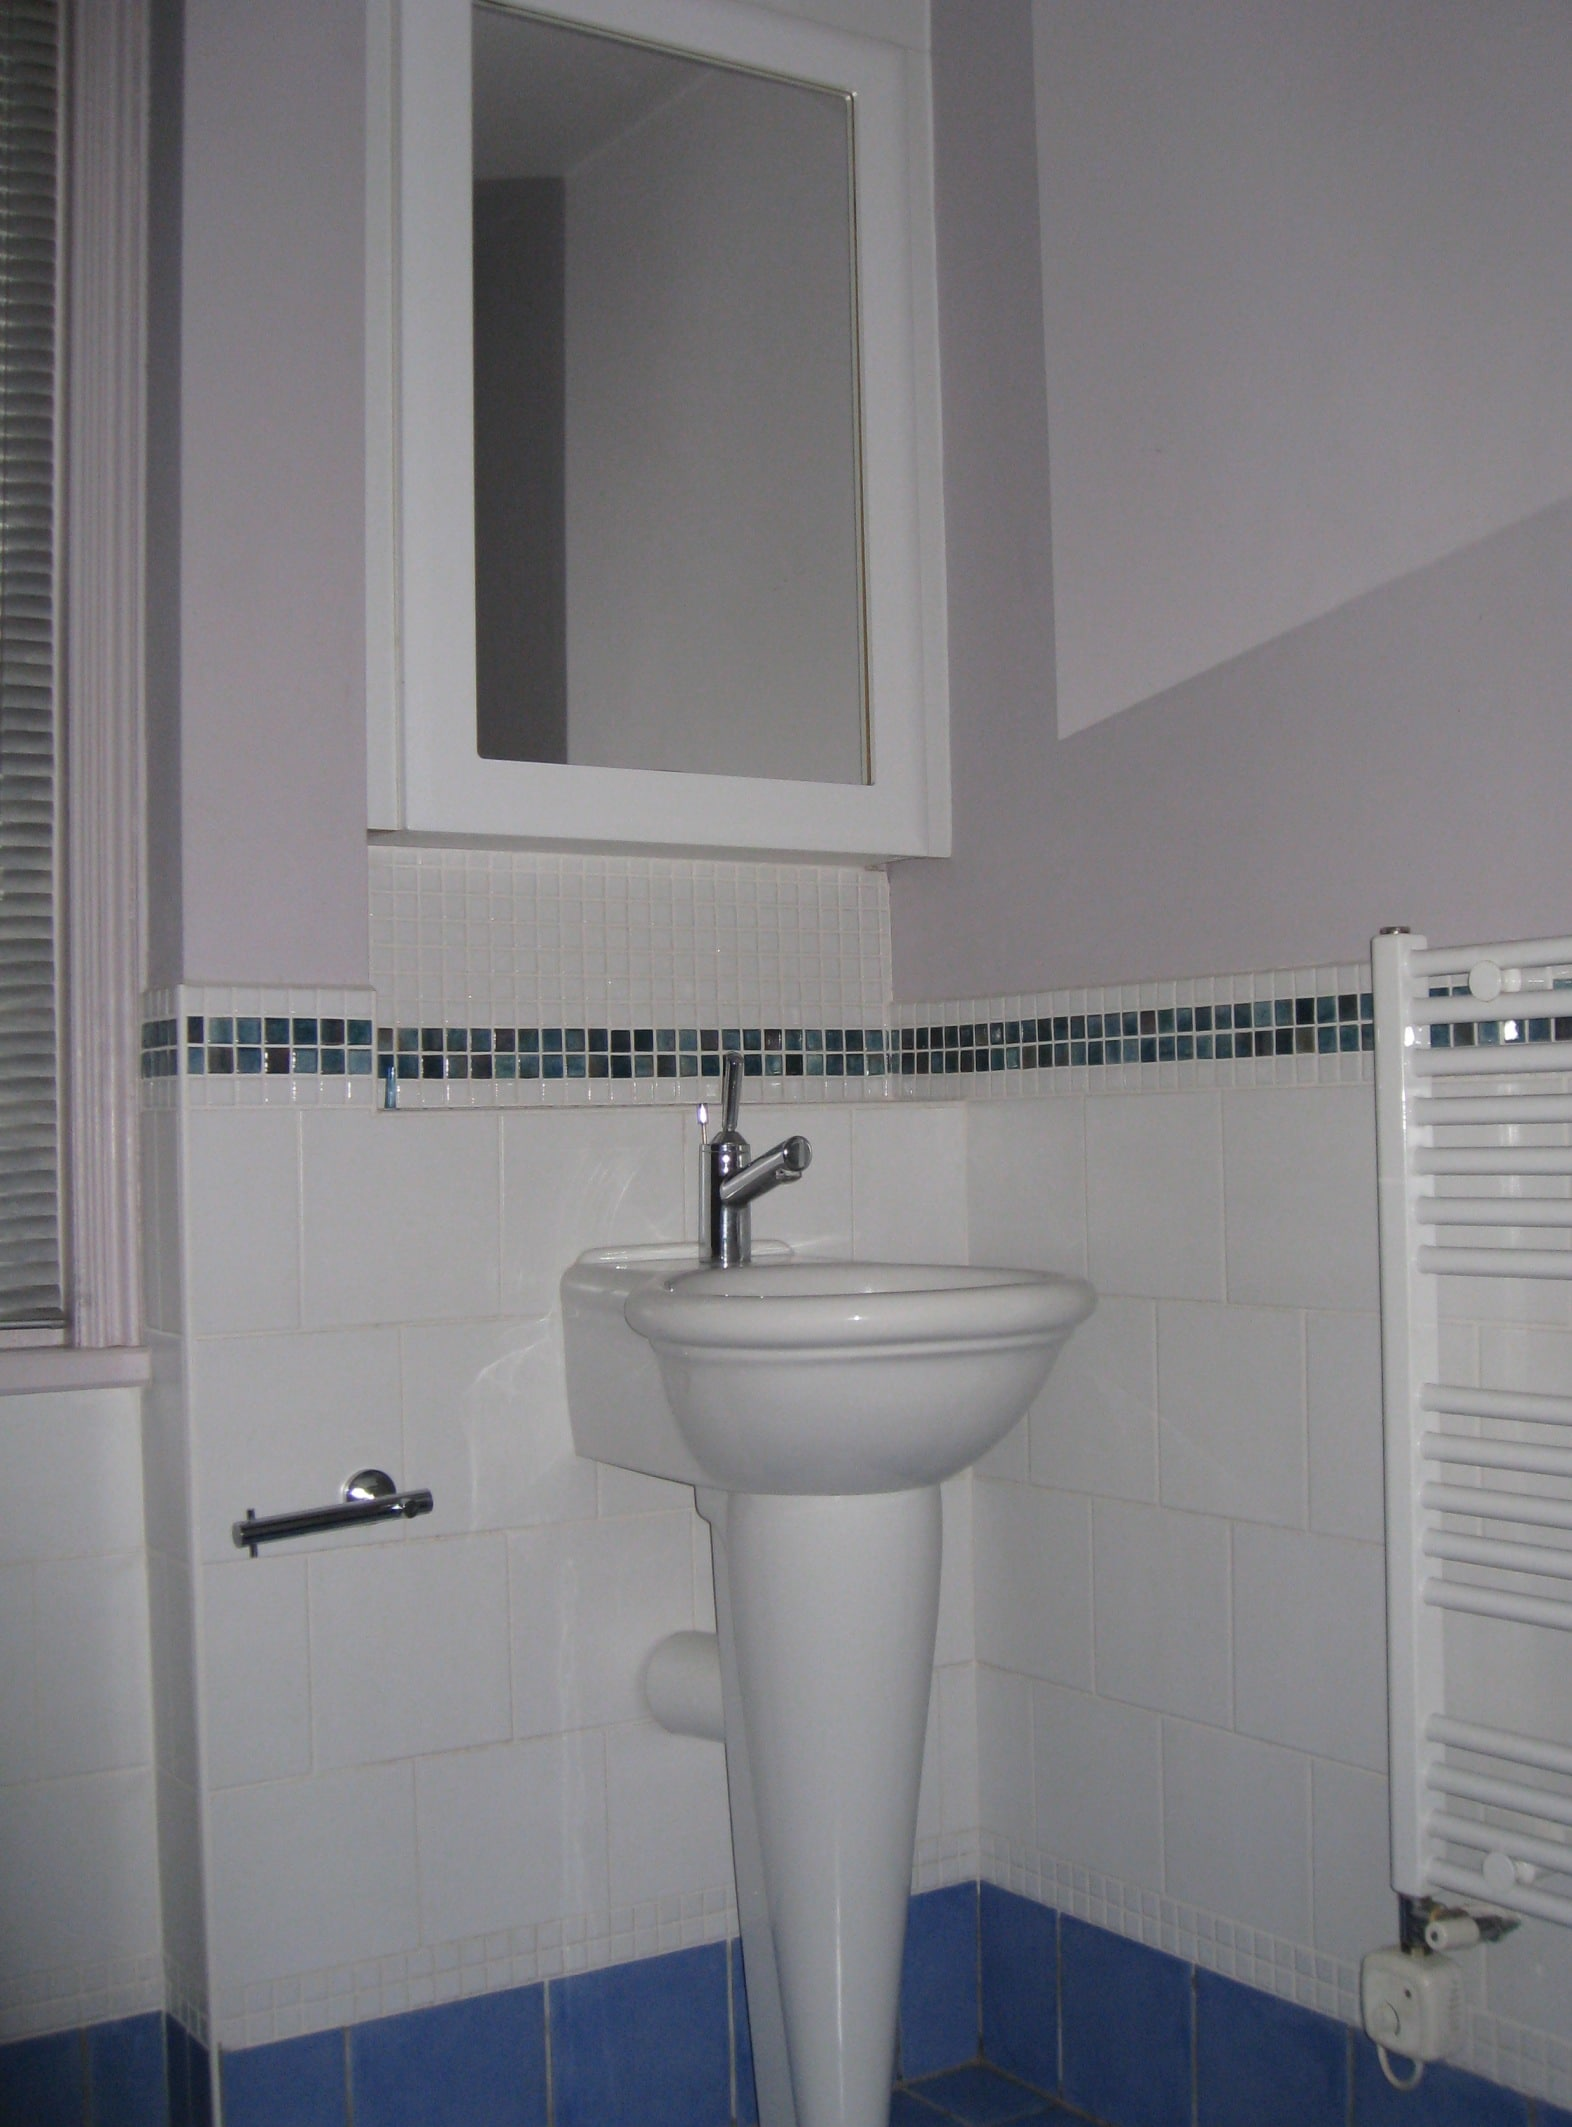 Lymm Family Bathroom Transforming Homes For Over 30